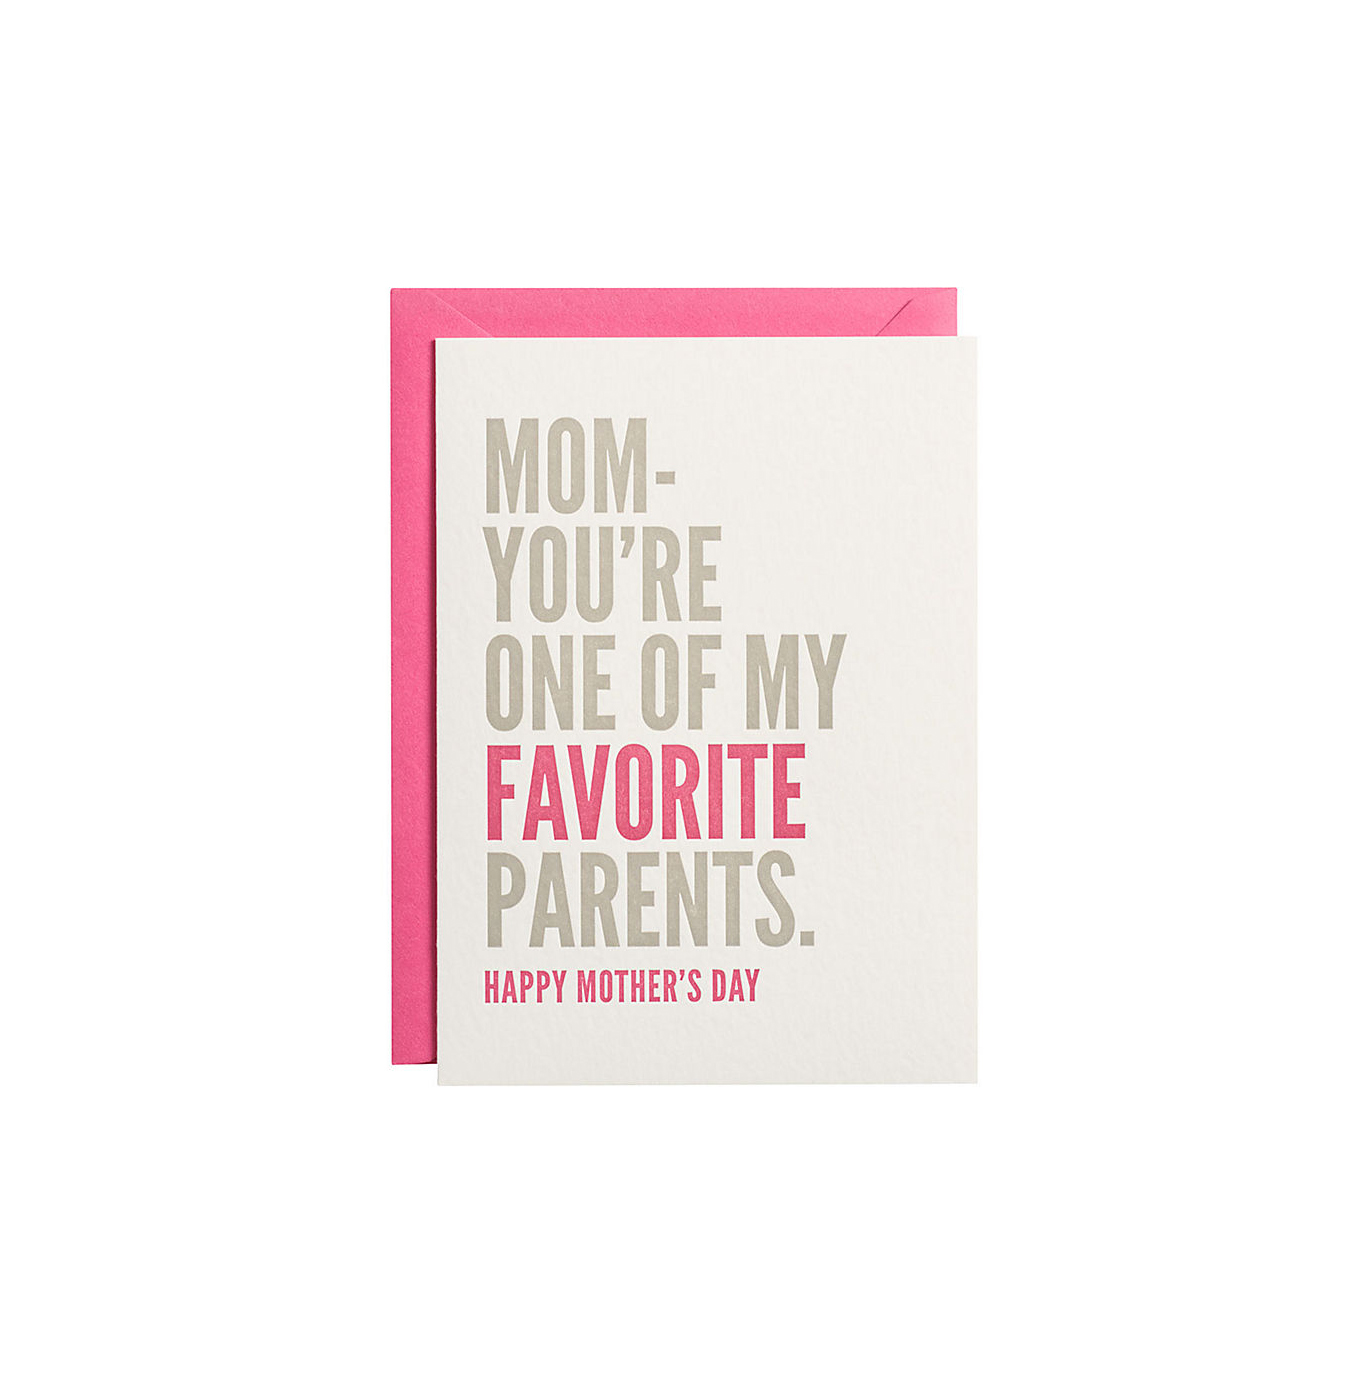 20 Mother's Day Cards That Perfectly Sum Up Your Feelings